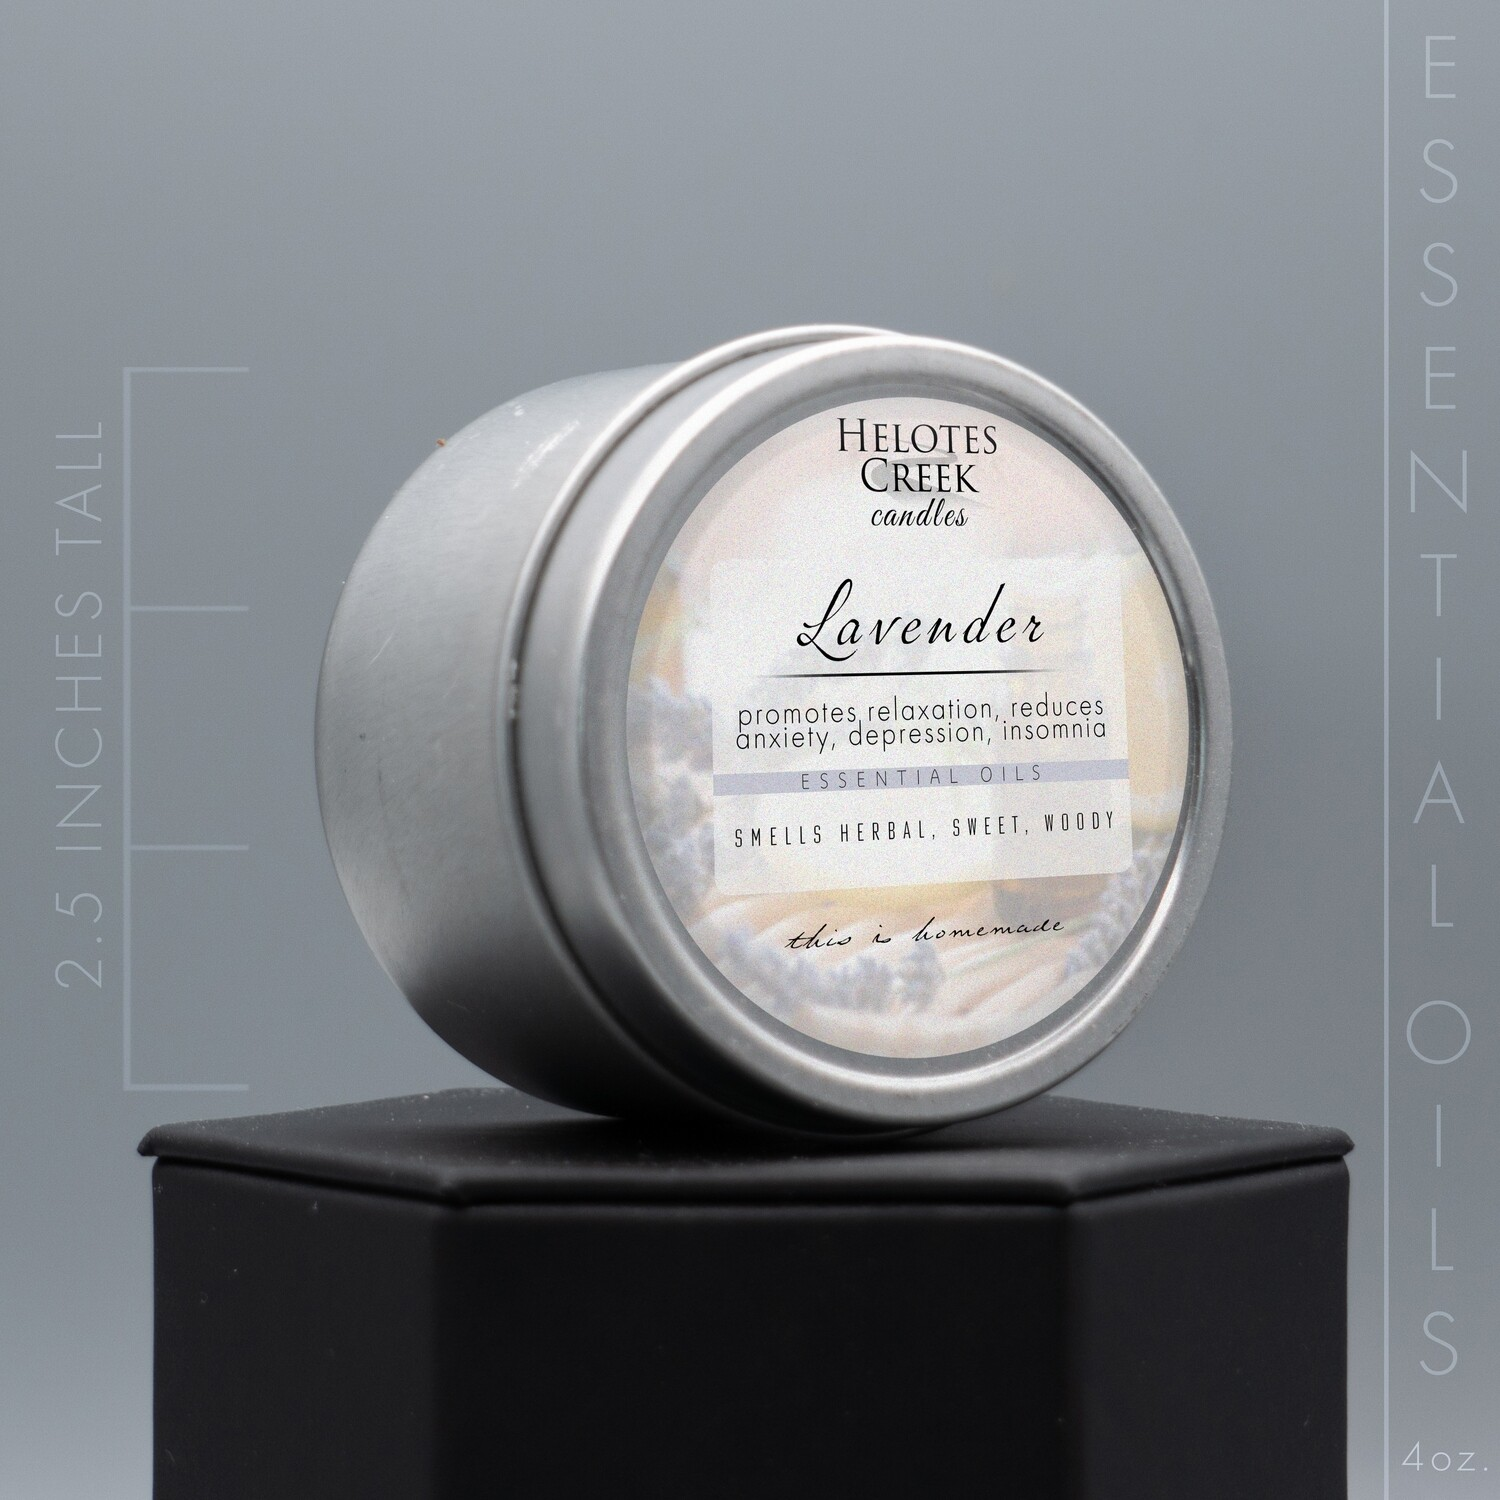 4 oz Lavender Essential Oil Candle in Tin